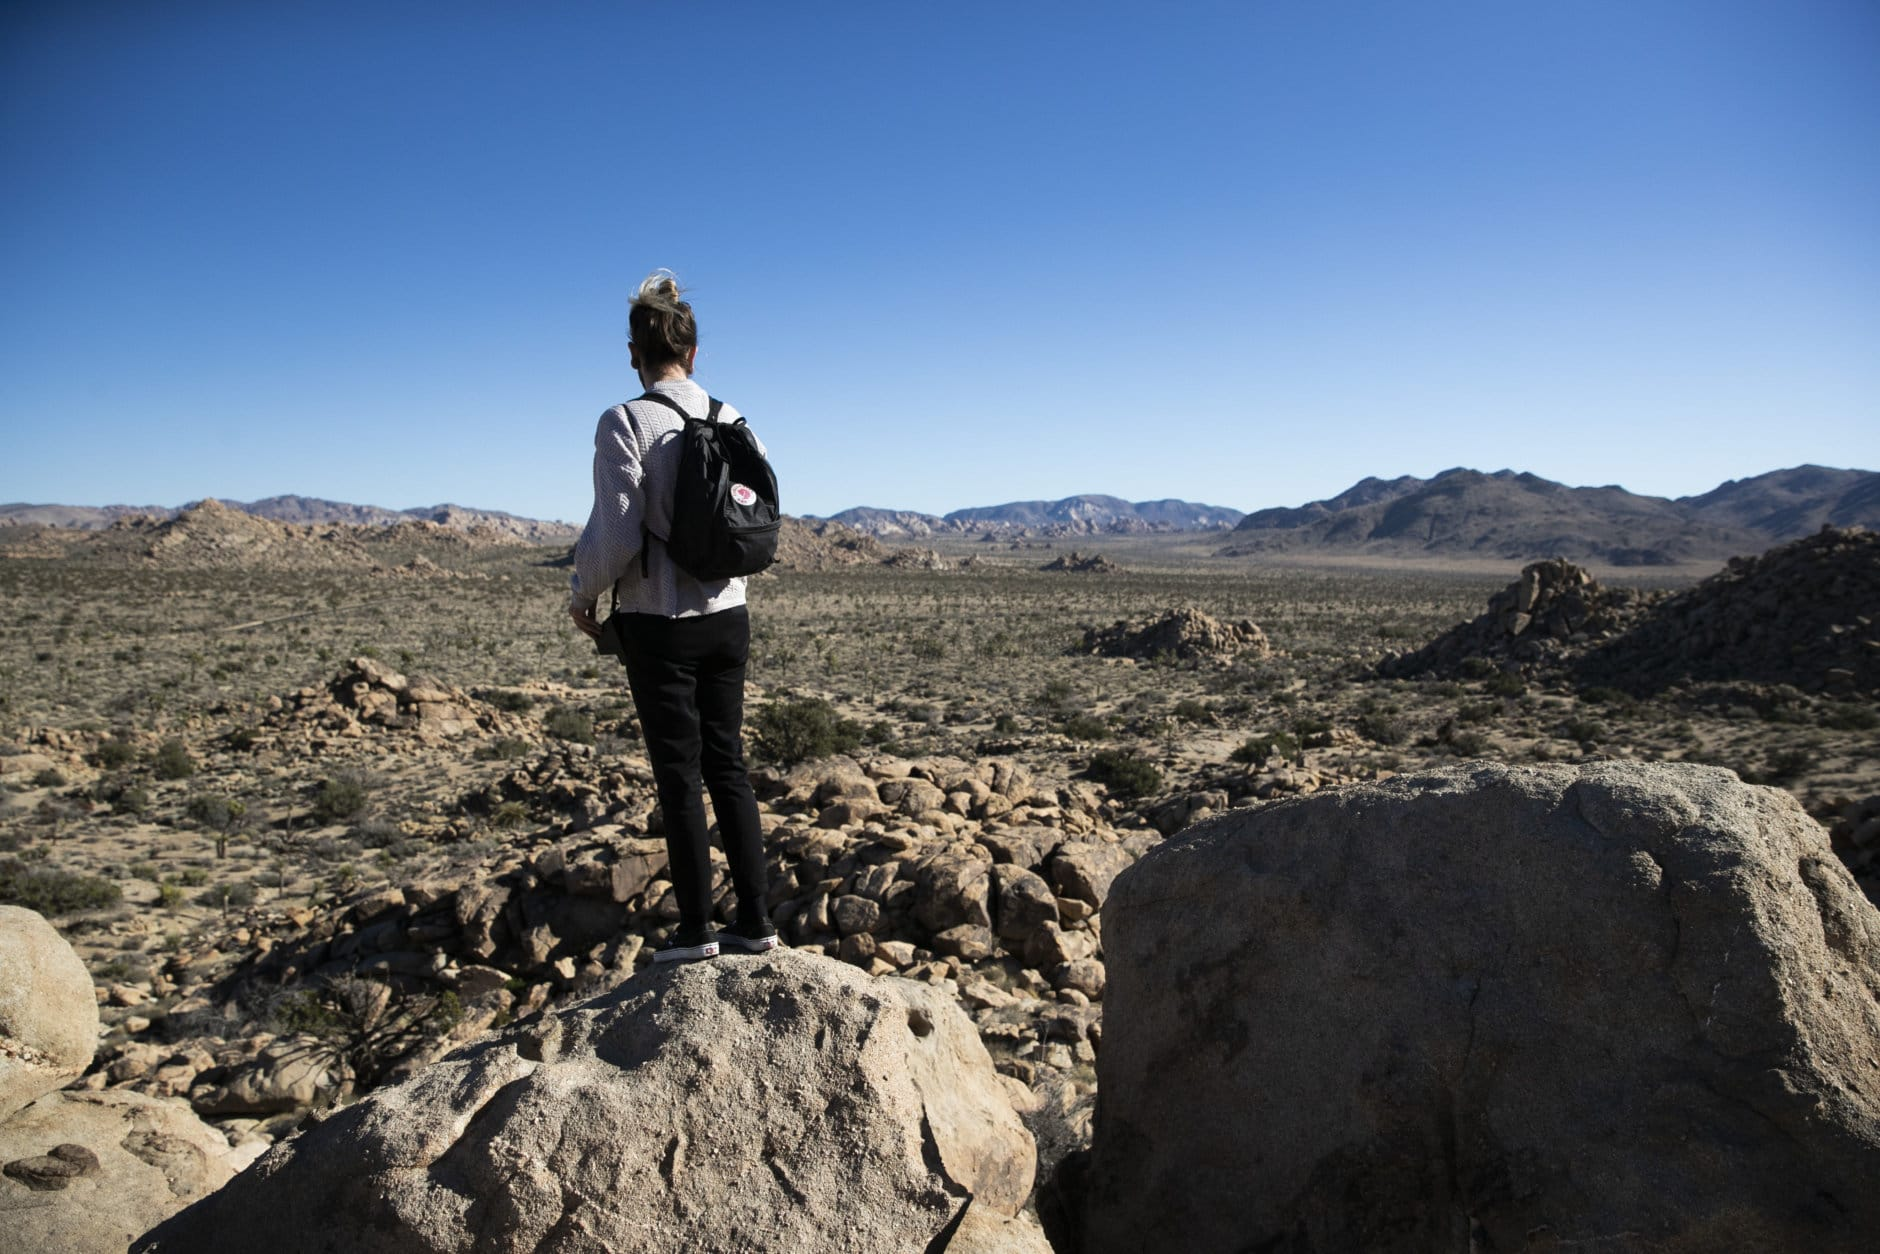 Trae Elliott visits Joshua Tree National Park in Southern California's Mojave Desert, Thursday, Jan. 10, 2019. The national park won't be closing because of the partial government shutdown after all. The desert preserve had planned to close on Thursday. As with other national parks, lack of staff had led to problems with human waste, trash and environmental damage. (AP Photo/Jae C. Hong)